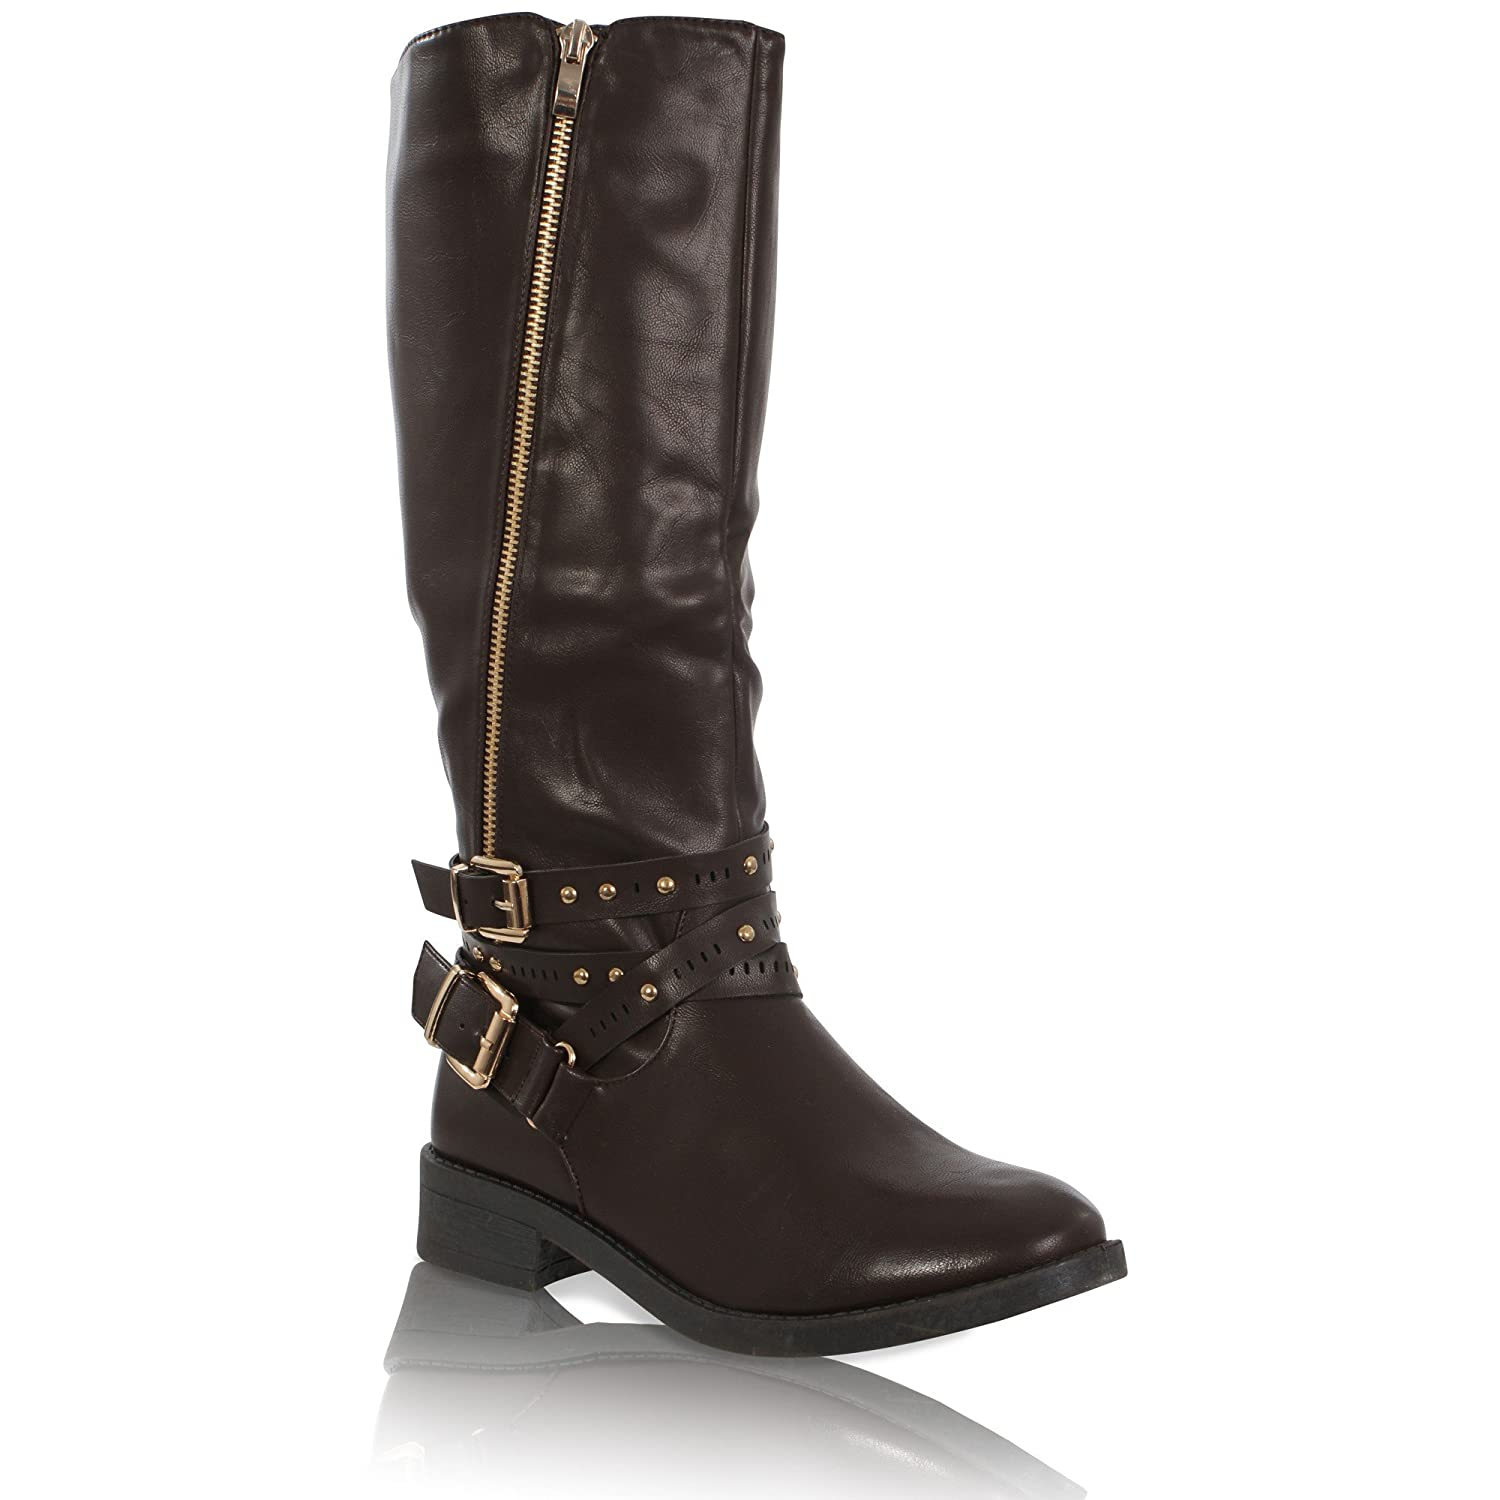 WOMENS BLOCK LOW HEEL BUCKLE OVER THE KNEE STUDDED LADIES BOOTS SHOES SIZE 3-8